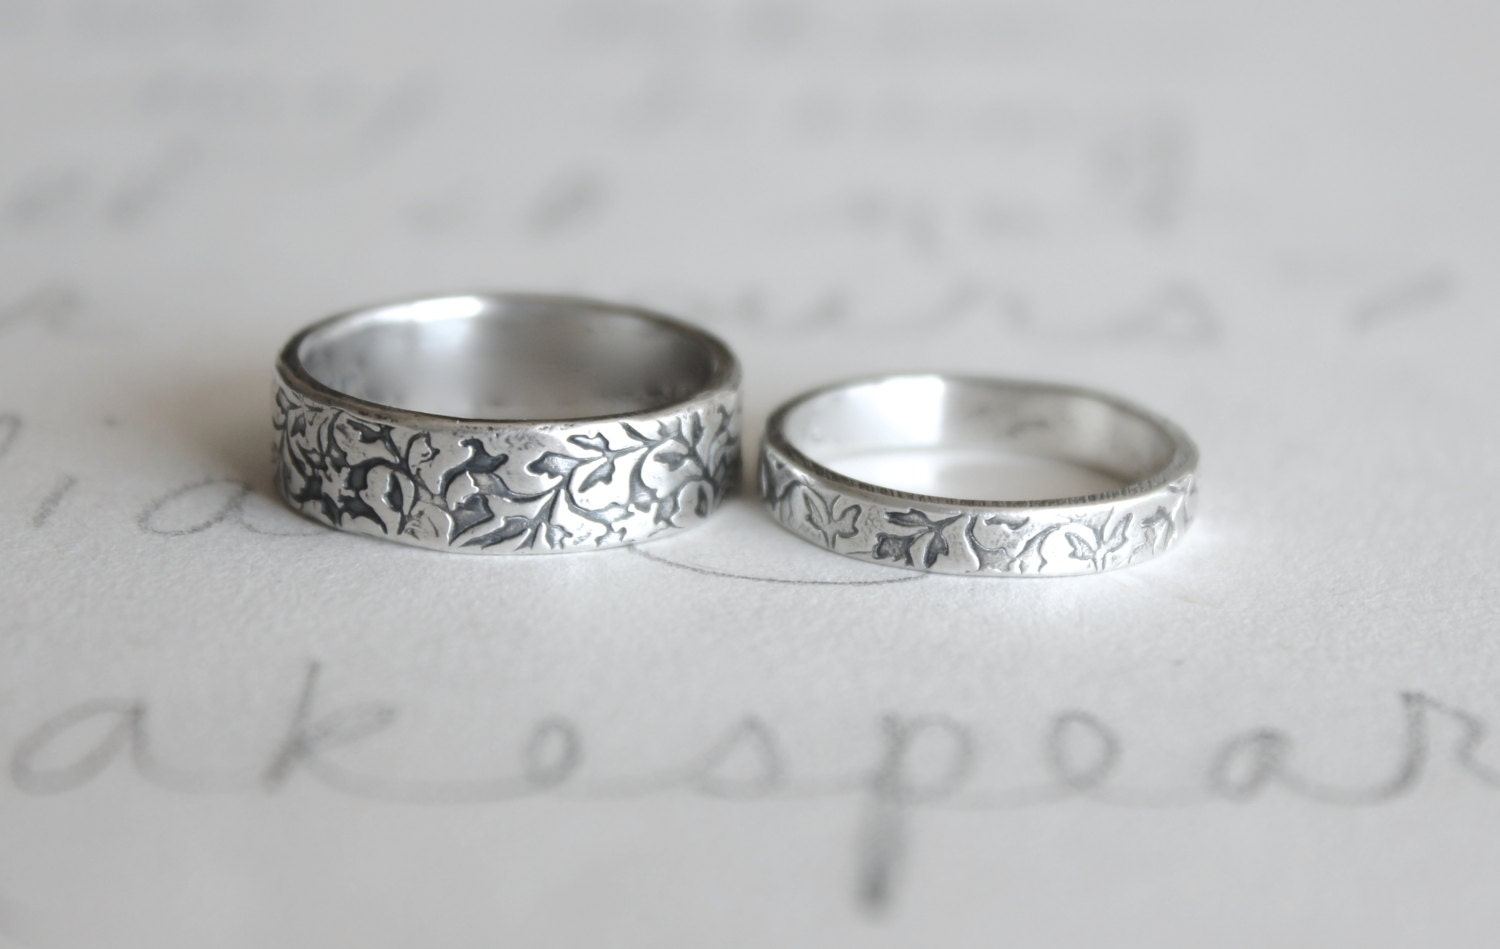 wedding band ring set vine leaf wedding rings bands handmade silver wedding ring set - Silver Wedding Ring